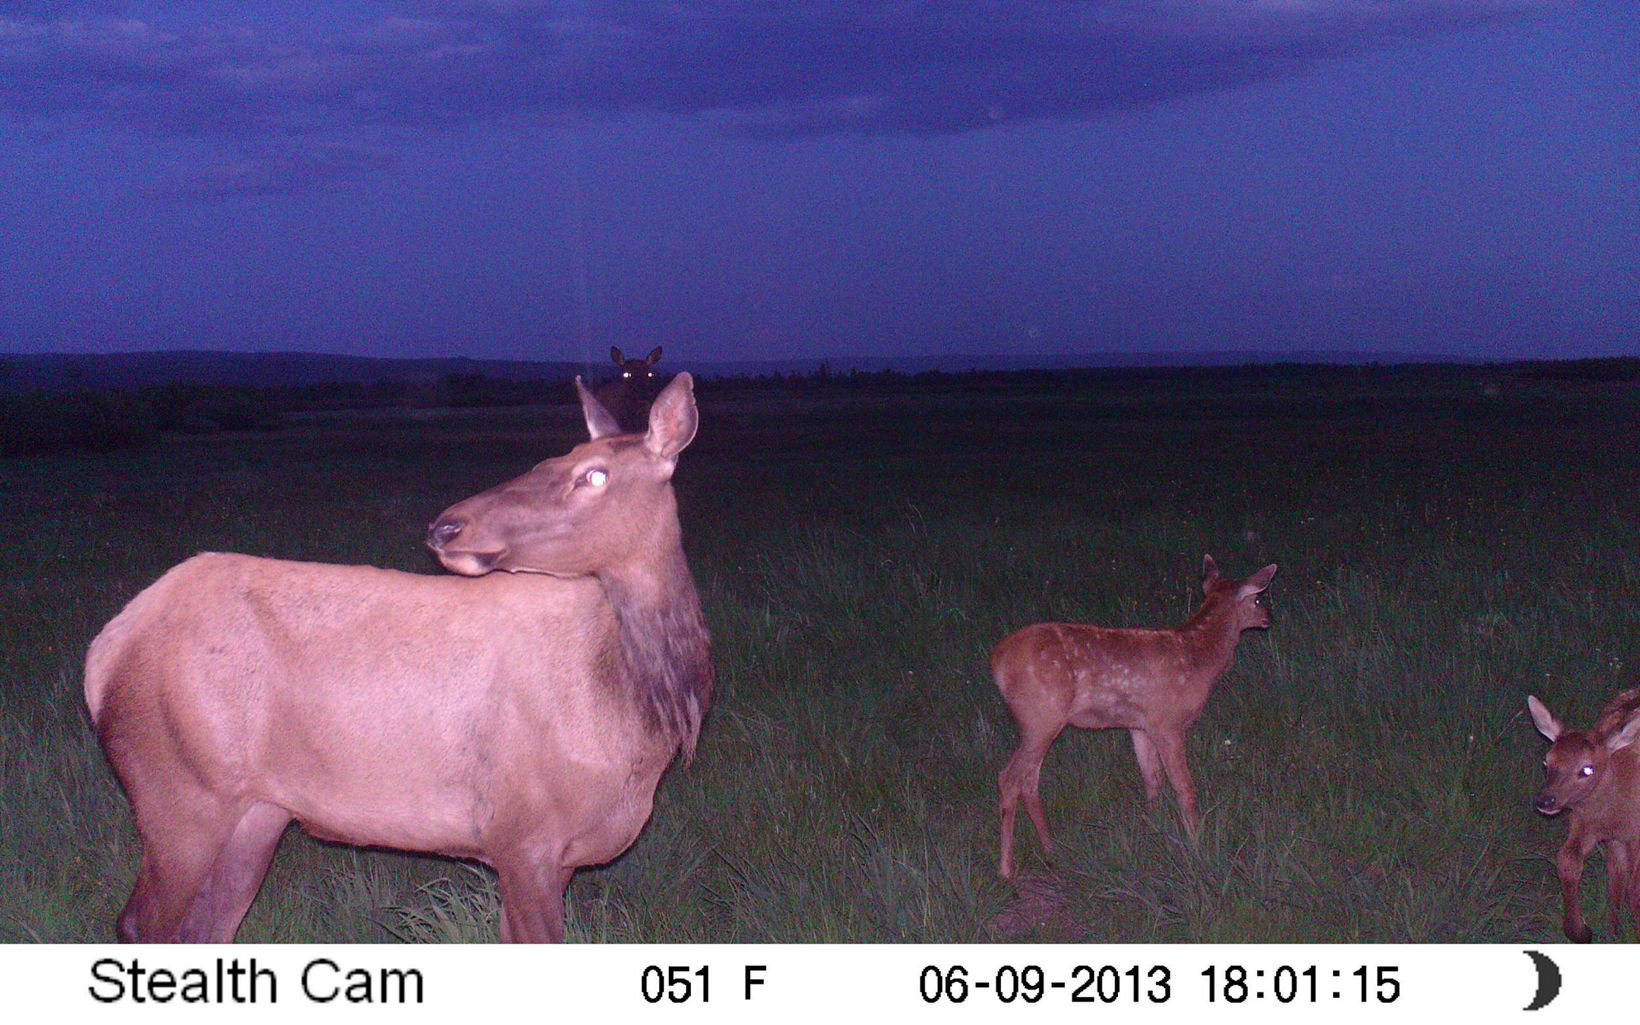 A camera trap photo of a mother and baby elk in semi-dark, with their eyes reflecting the flash.